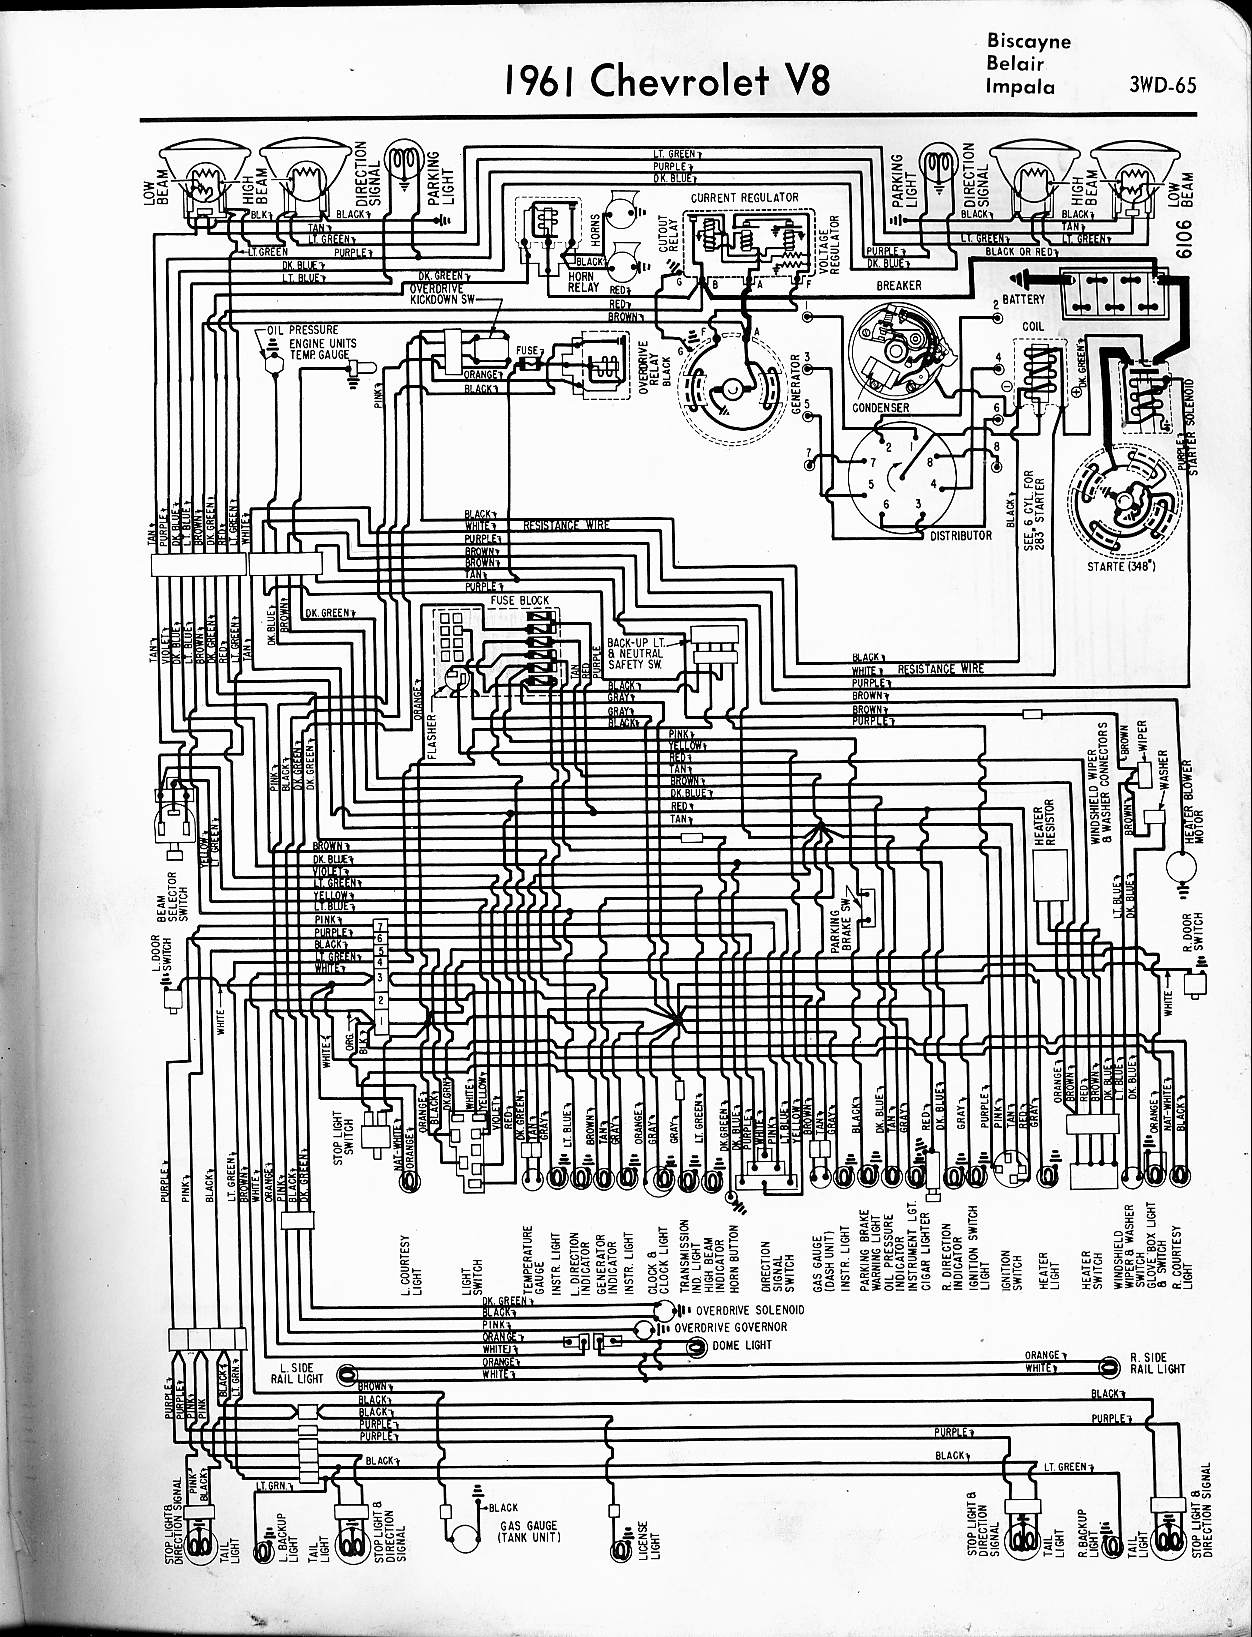 Surprising 1965 Corvette Wiring Harness Diagram Data Schema Wiring 101 Capemaxxcnl